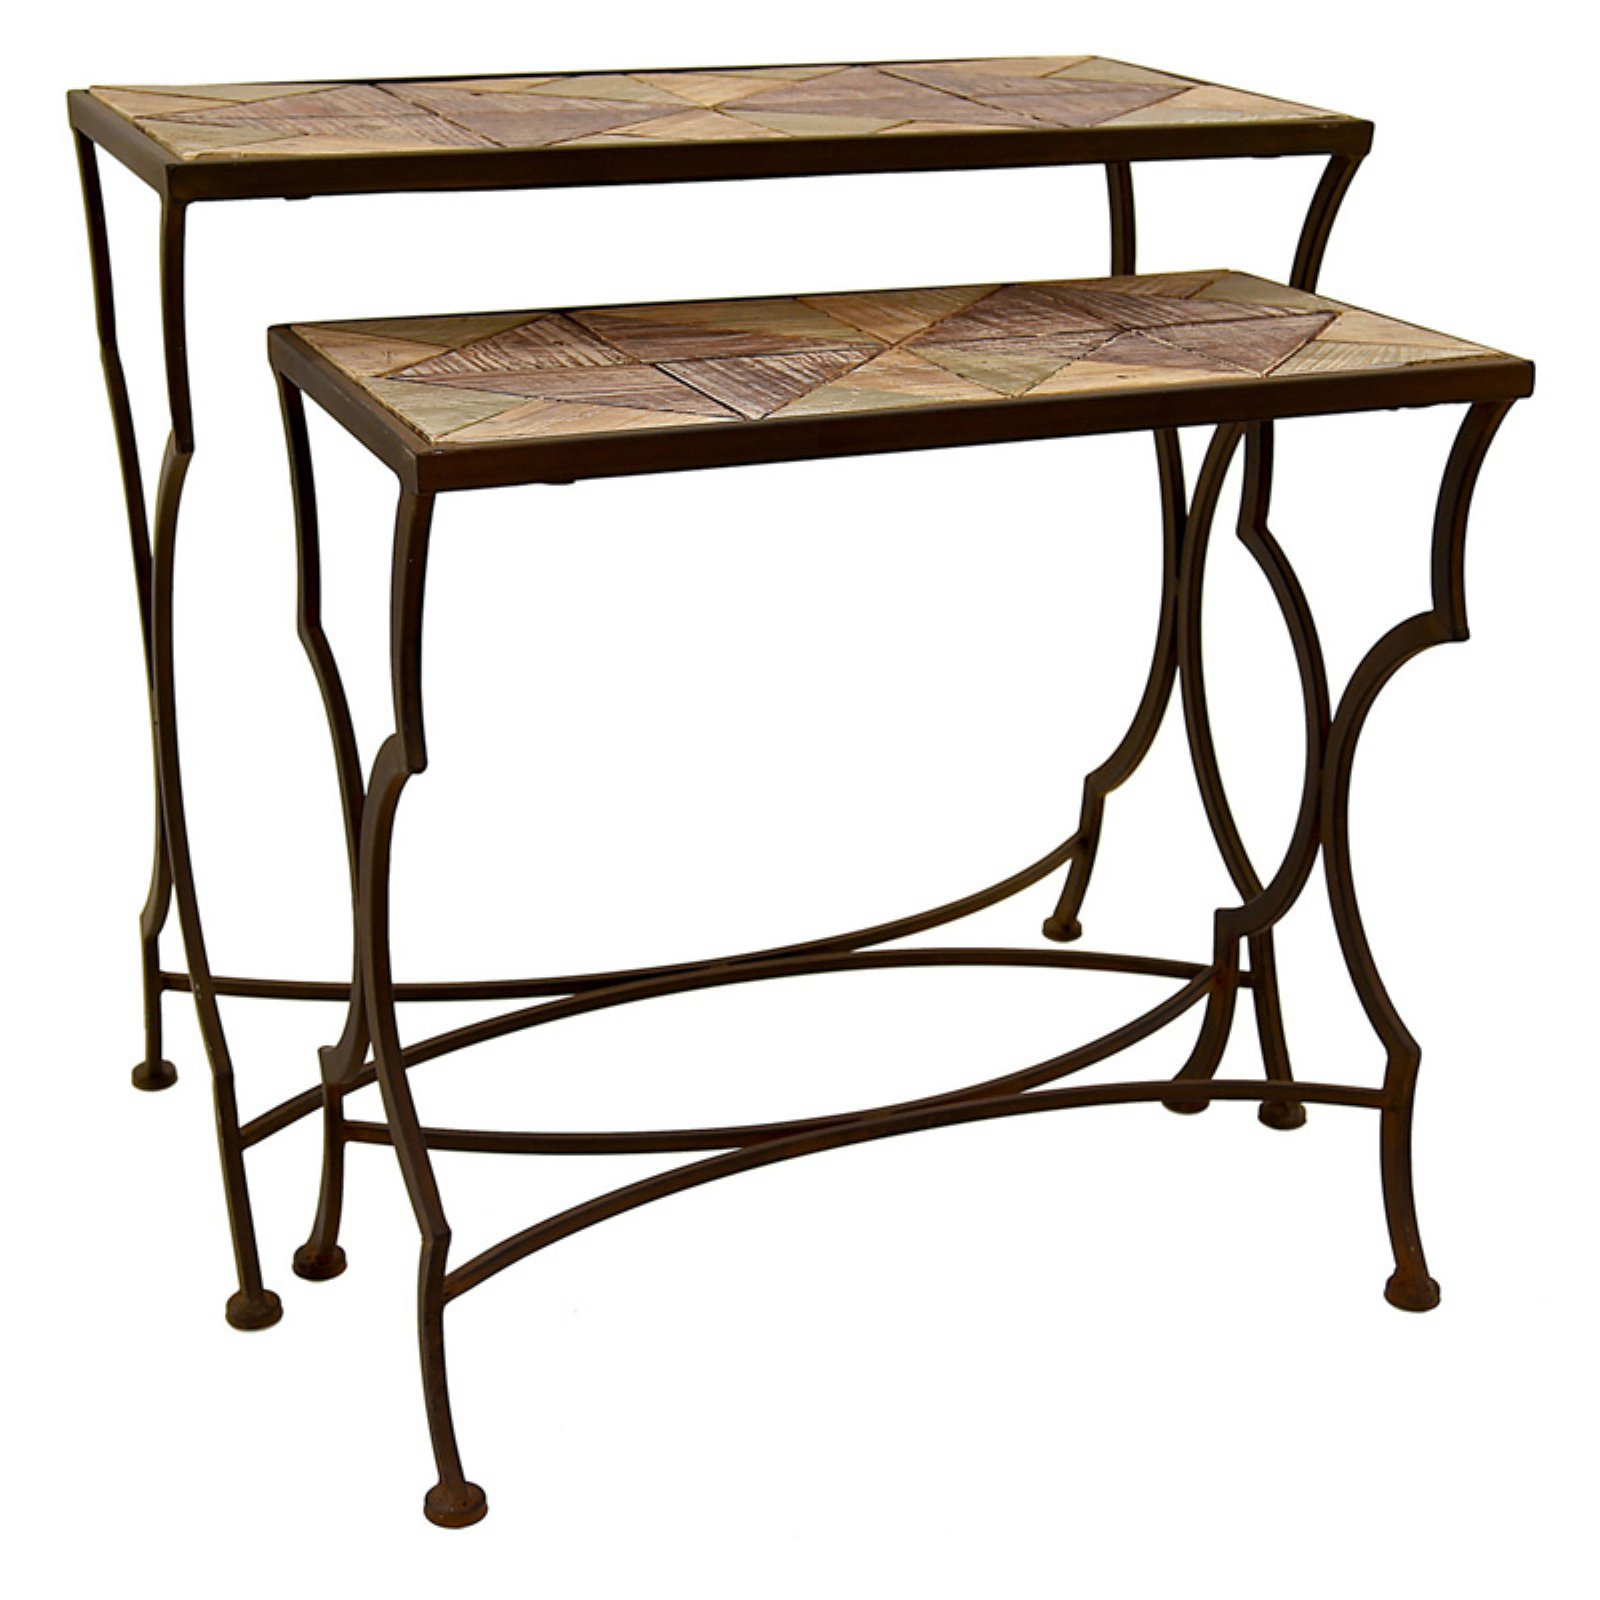 Three Hands Rustic Metal and Wood Nesting Tables - Set of 2